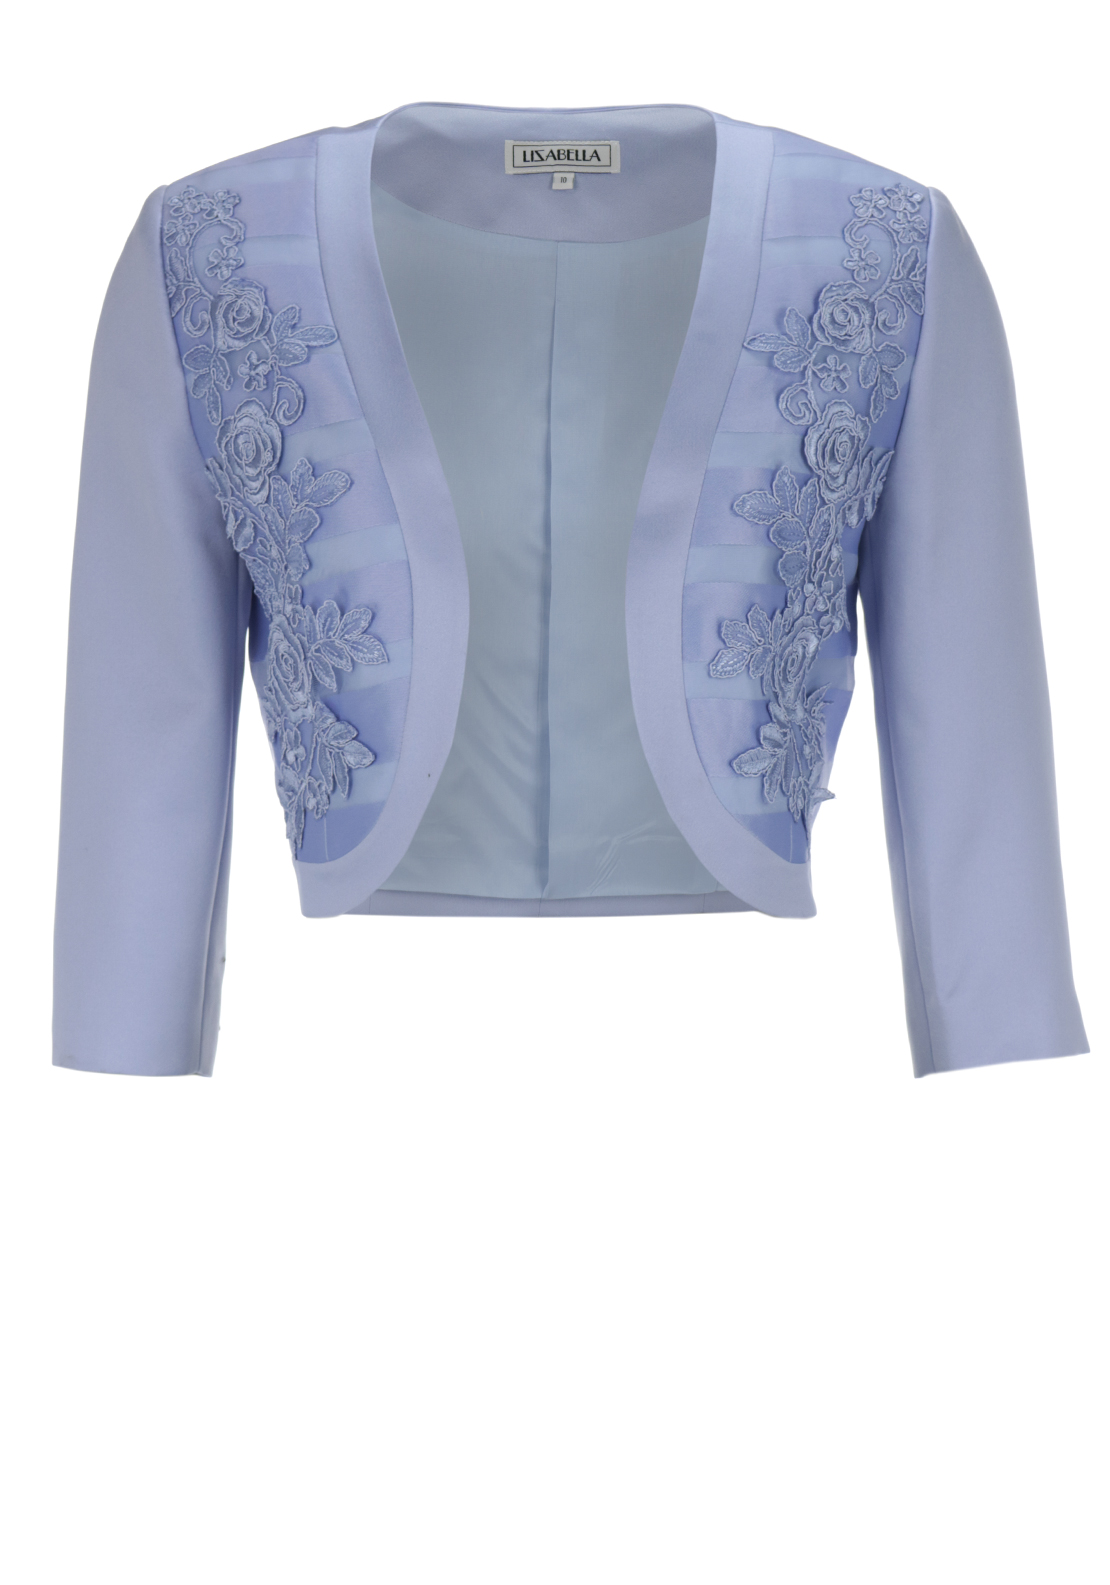 Izabella Lace Trim Organza Stripe Bolero Jacket, Pale Blue